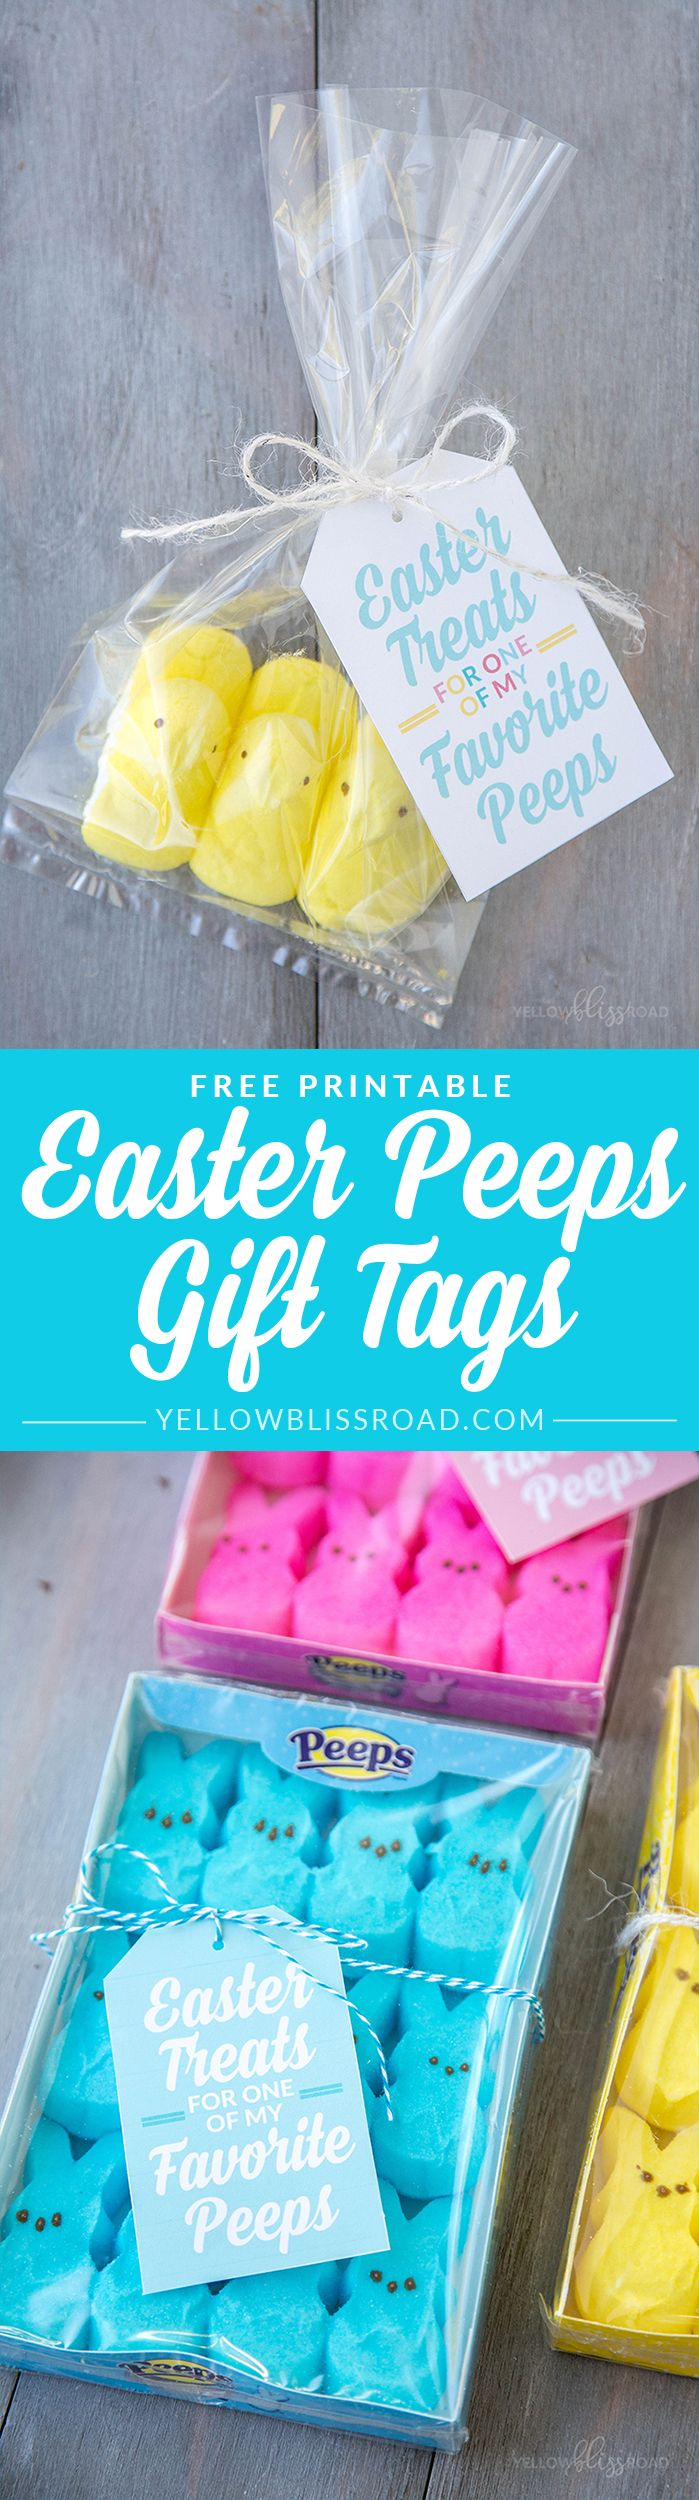 Peeps easter gift idea with free printables negle Image collections